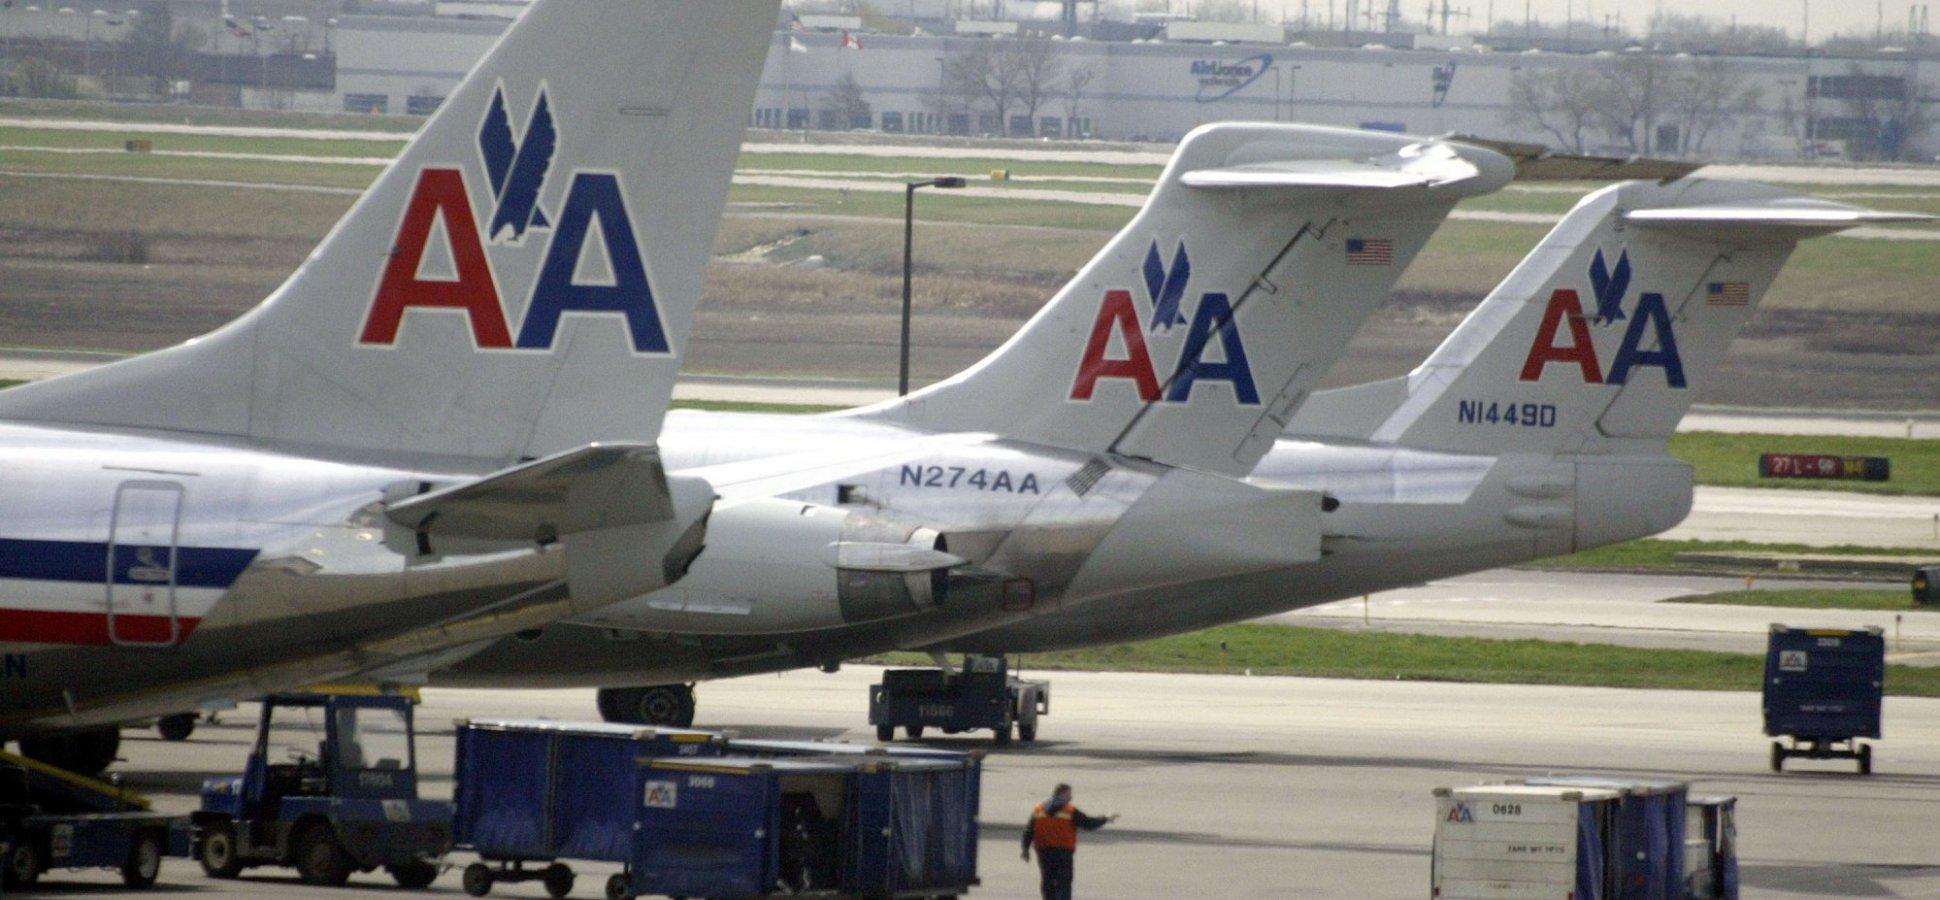 Why Is Your American Airlines Flight Late? Here's the Brutally Honest Reason Why (From the American Airlines President)